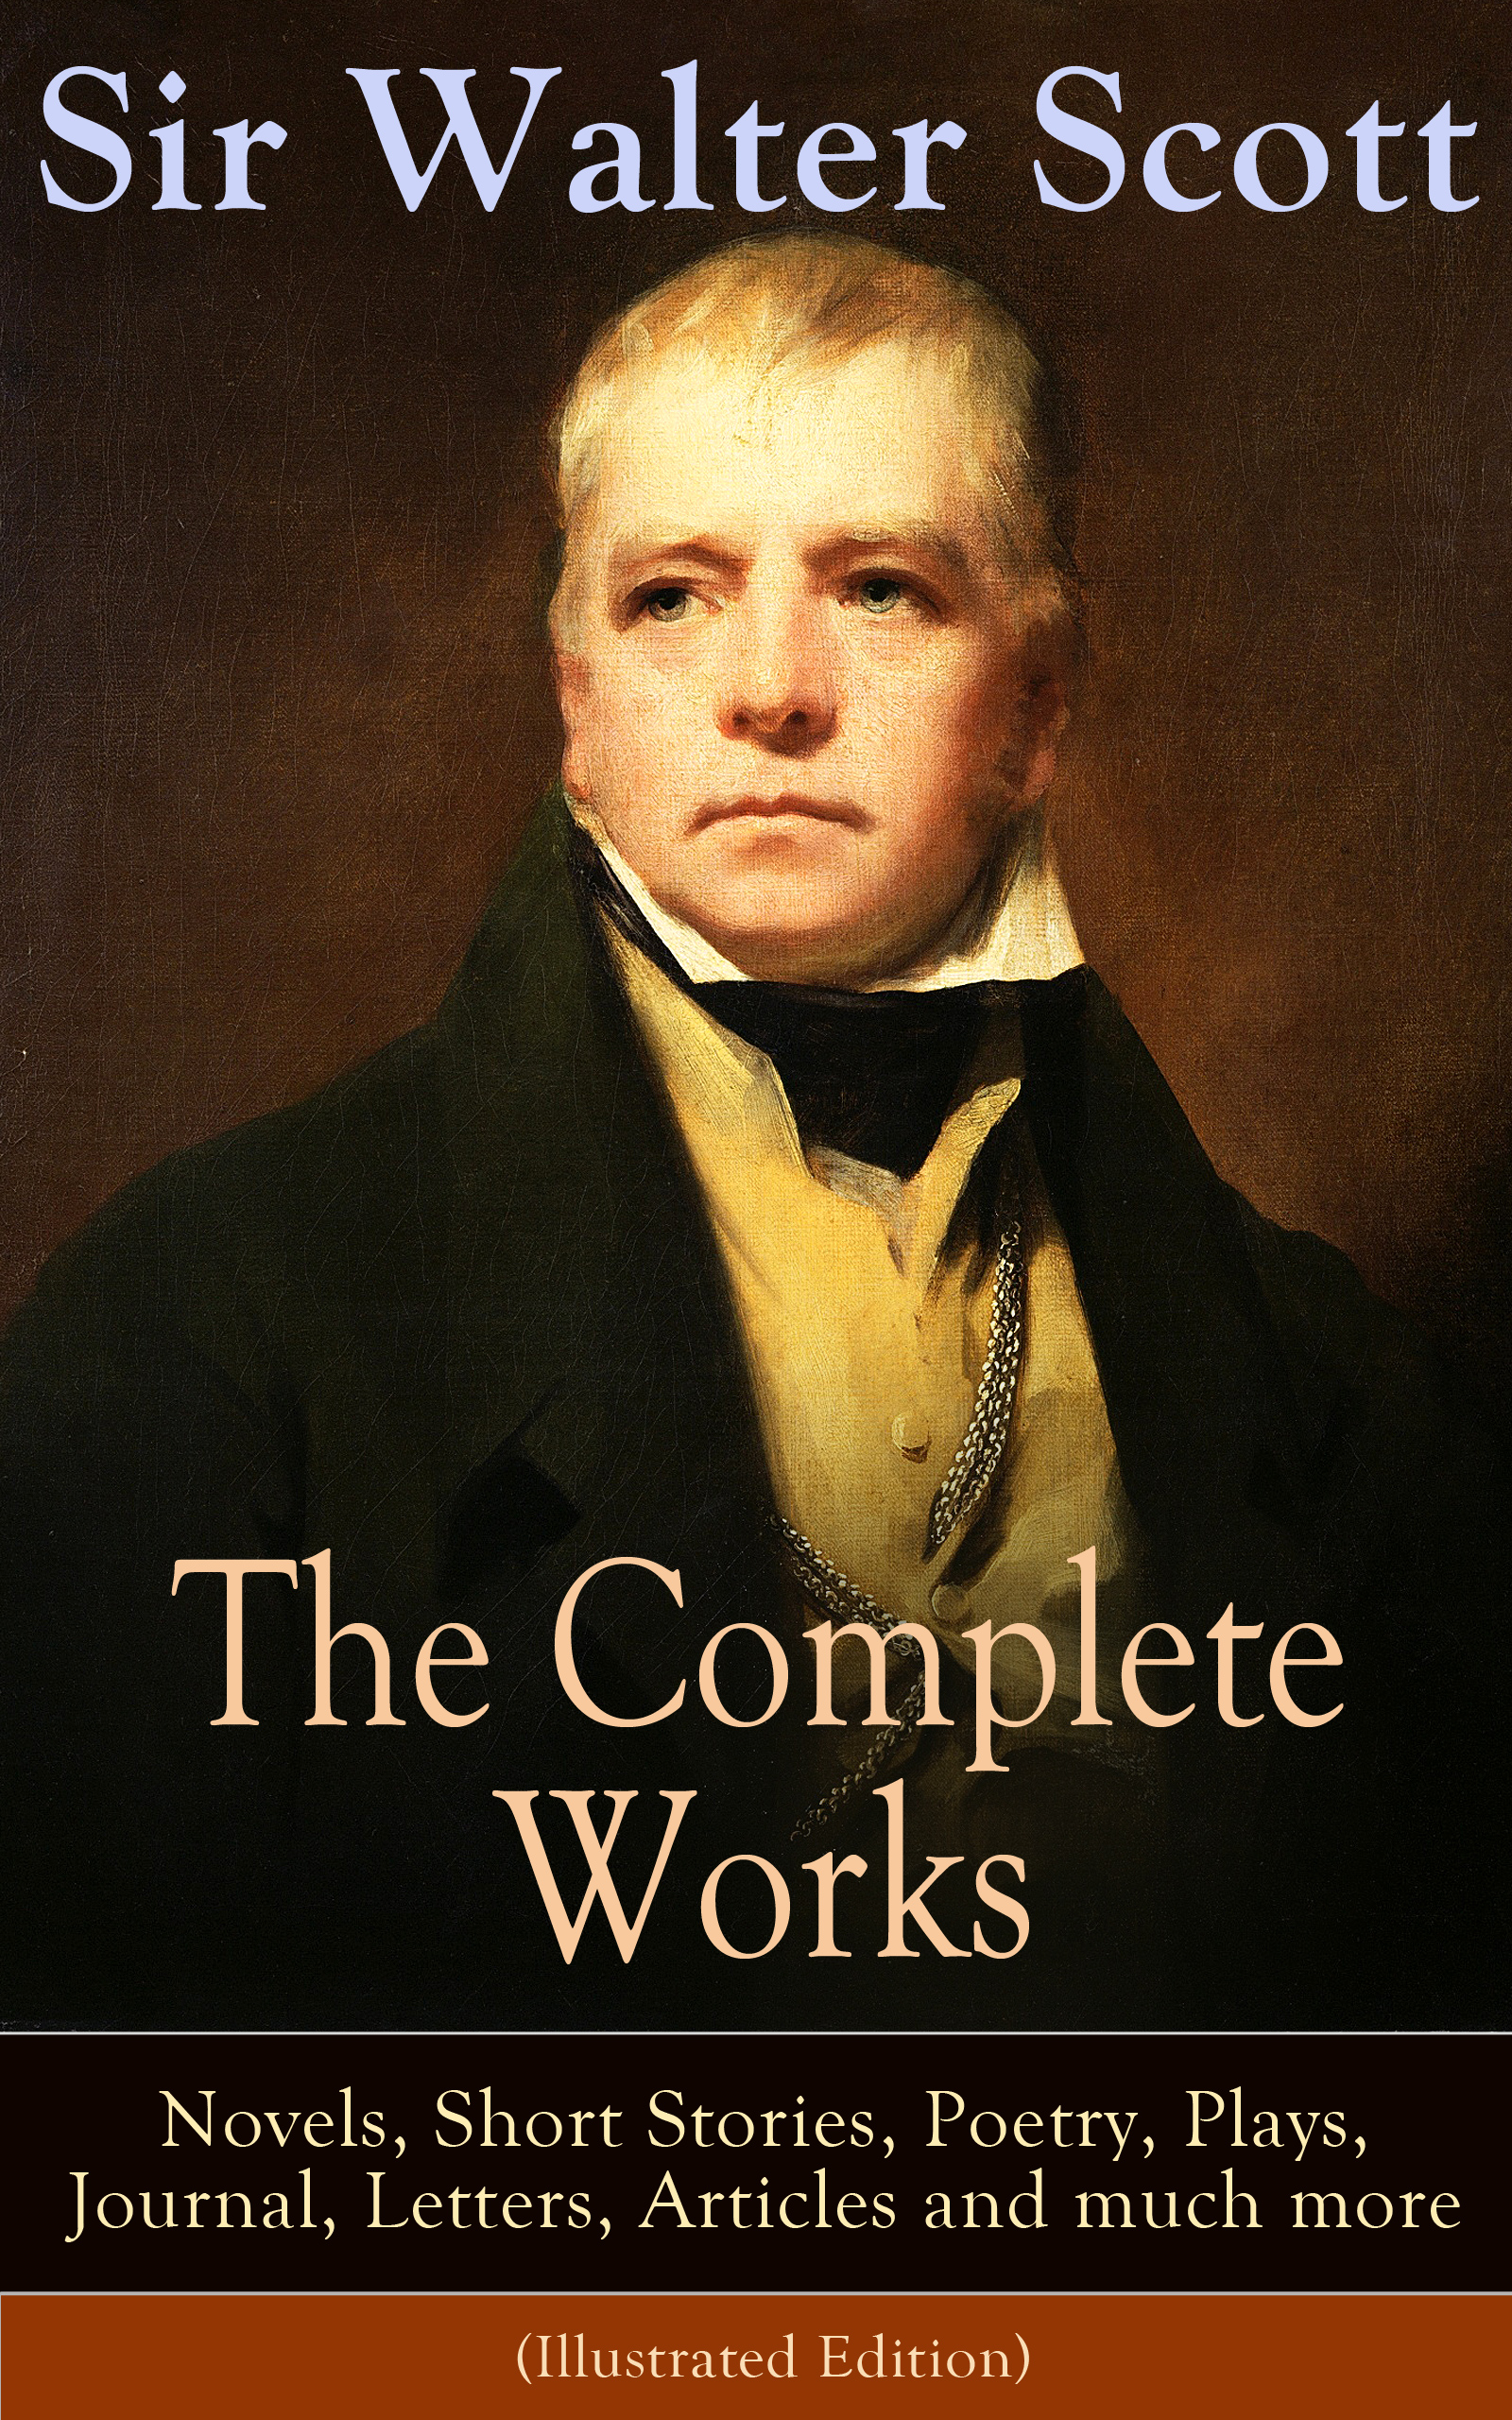 Walter Scott The Complete Works of Sir Walter Scott: Novels, Short Stories, Poetry, Plays, Journal, Letters, Articles and much more (Illustrated Edition) scott walter woodstock 2